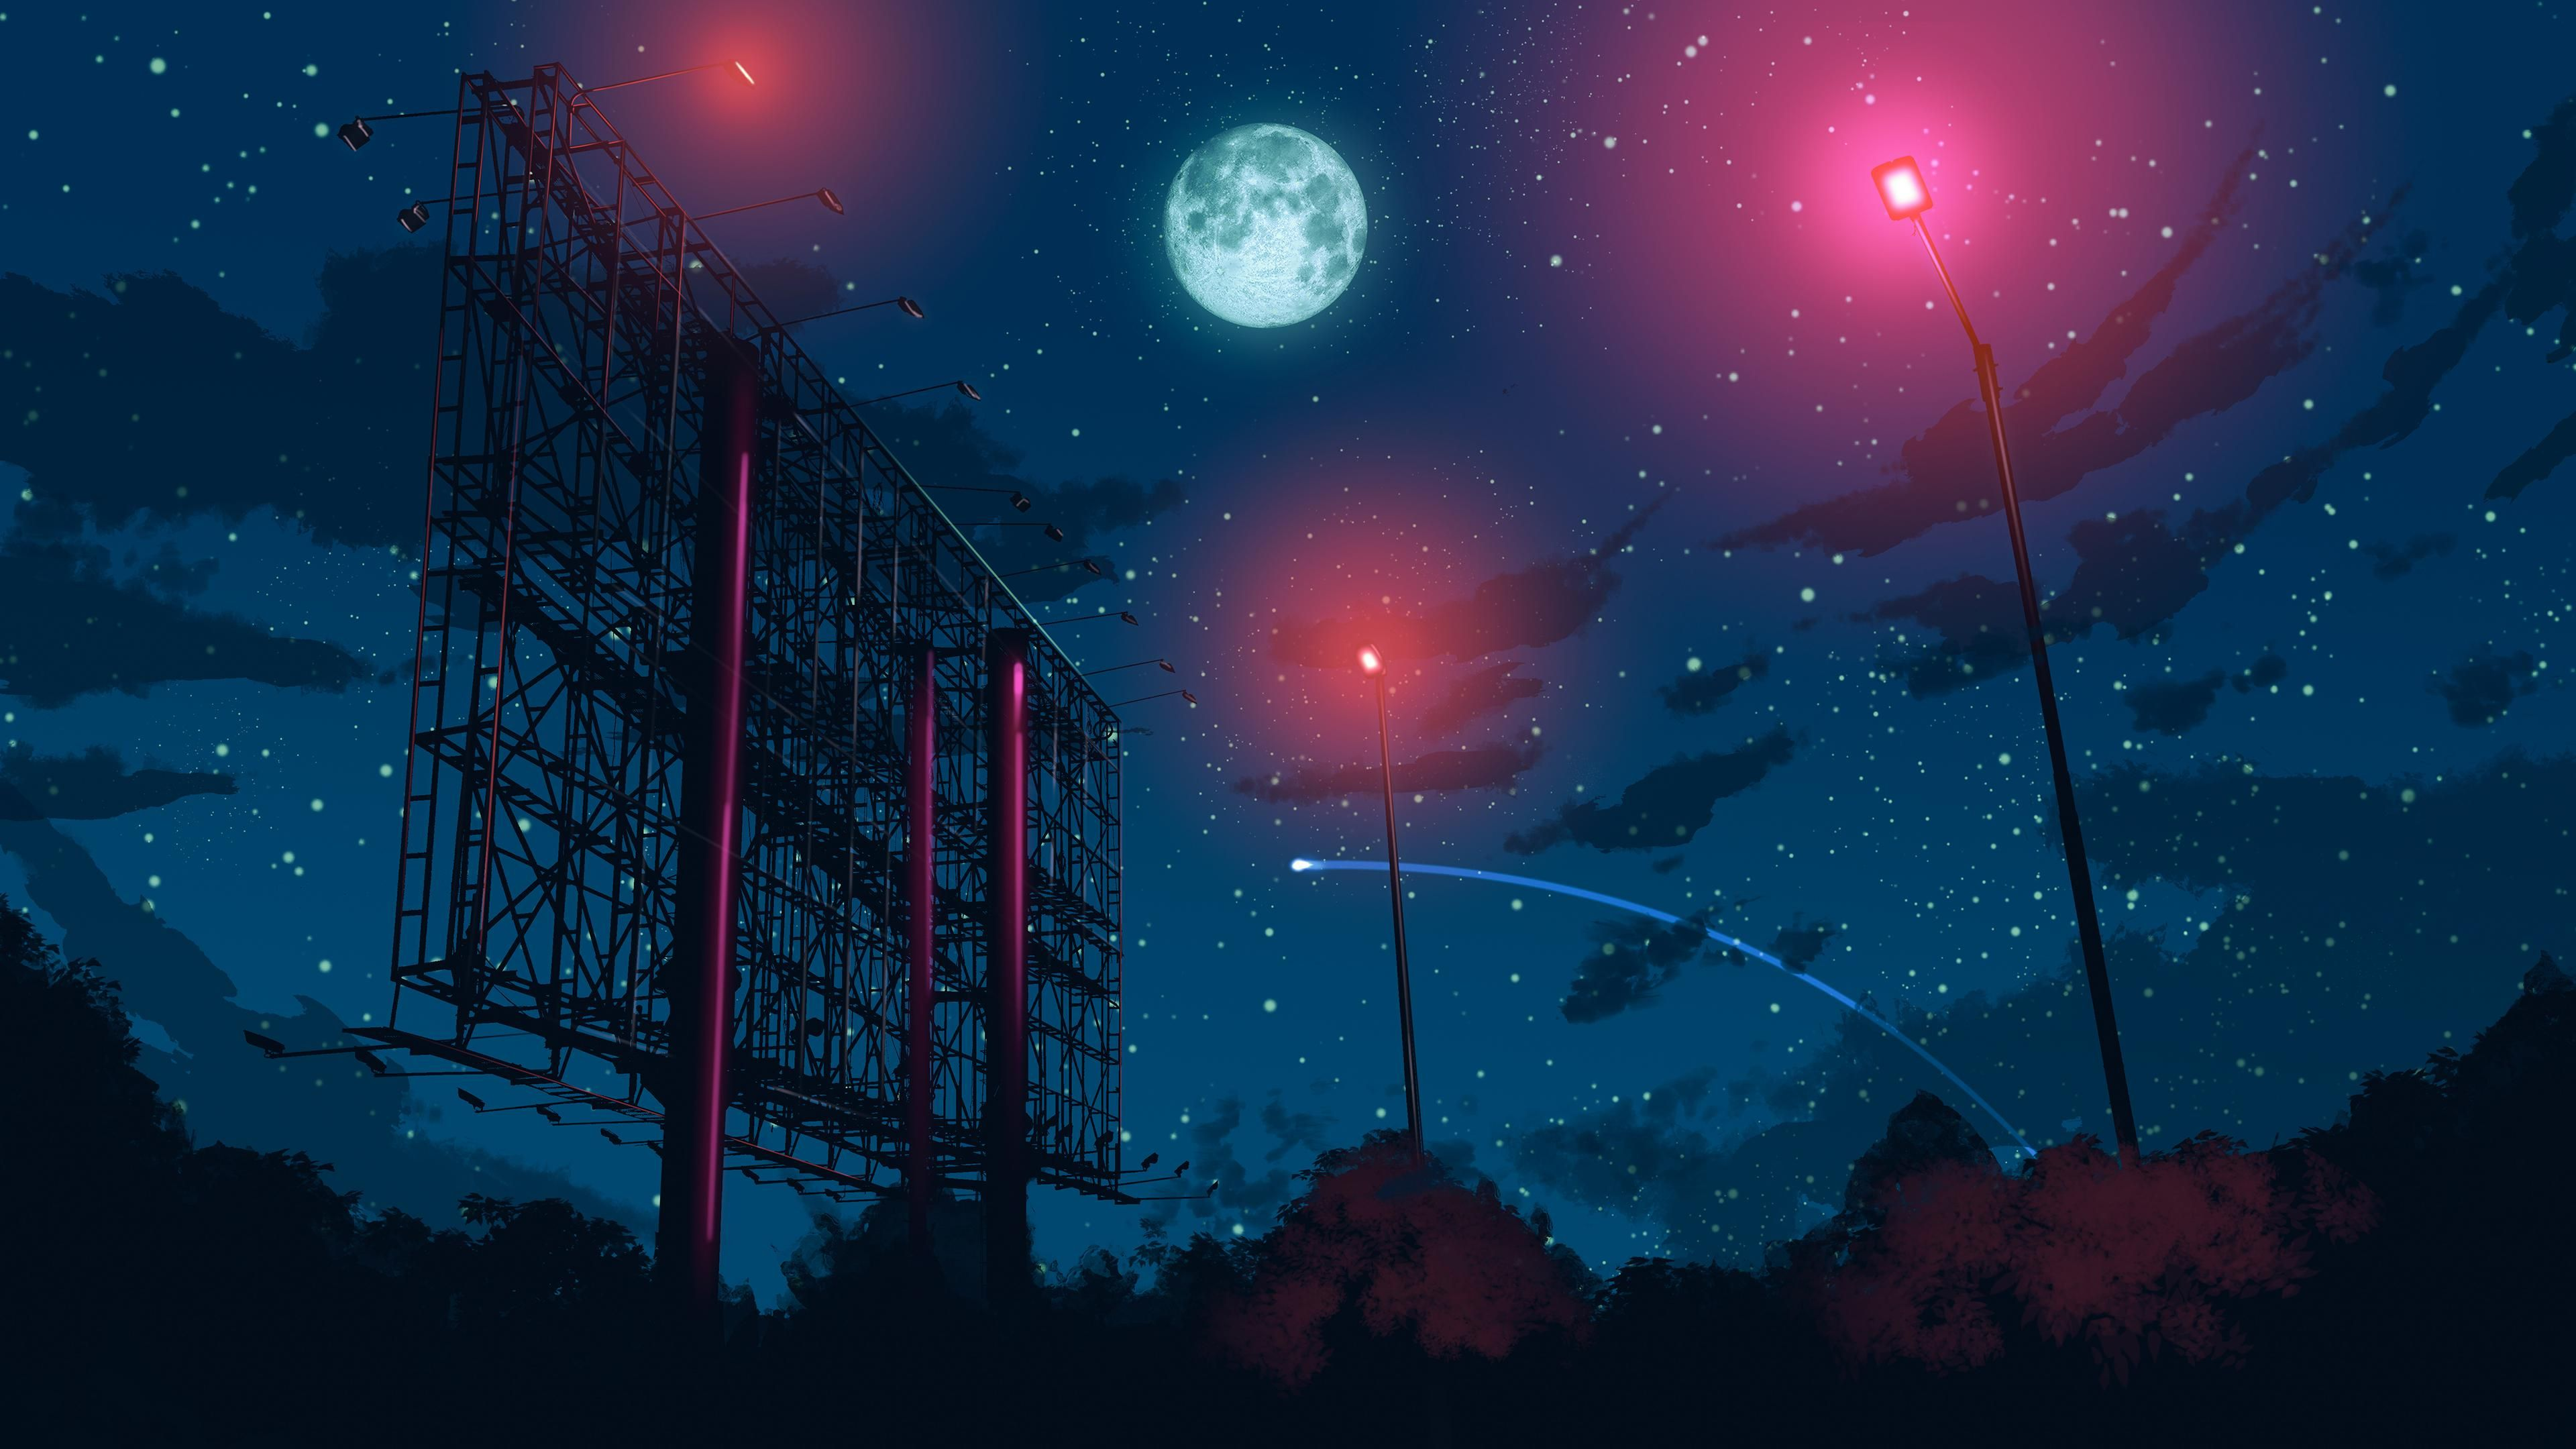 Anime Style Night Sky 3840x2160 Uncropped 6k Version Link In Comment Sky Aesthetic Night Sky Wallpaper Sky Anime